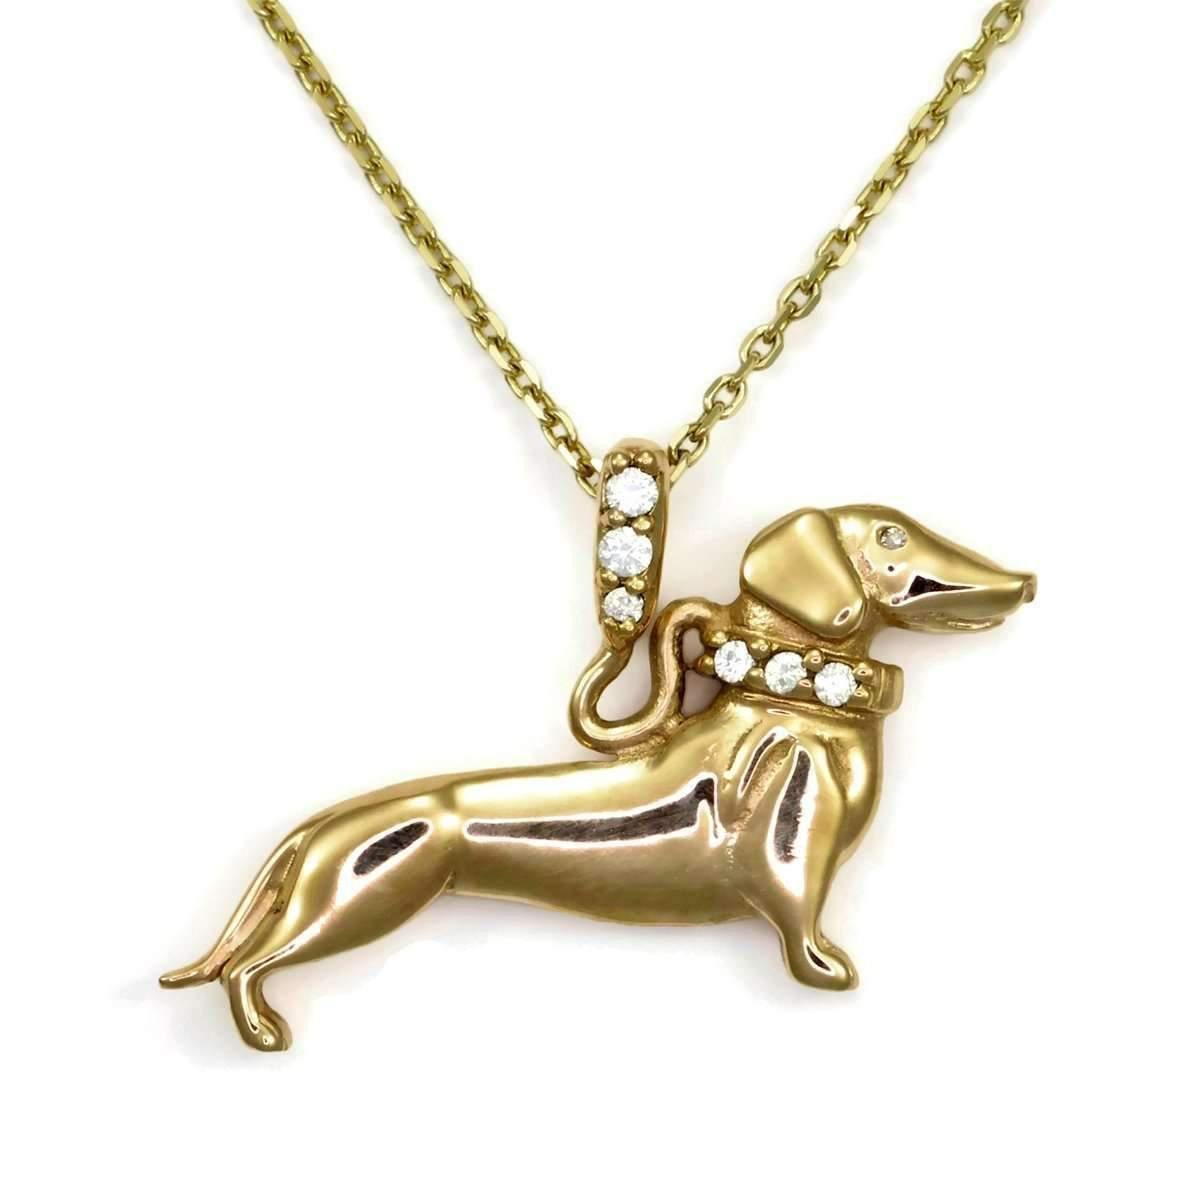 Donna Pizarro Designs 14kt Yg Dachshund With Diamond Leash iNhEocO